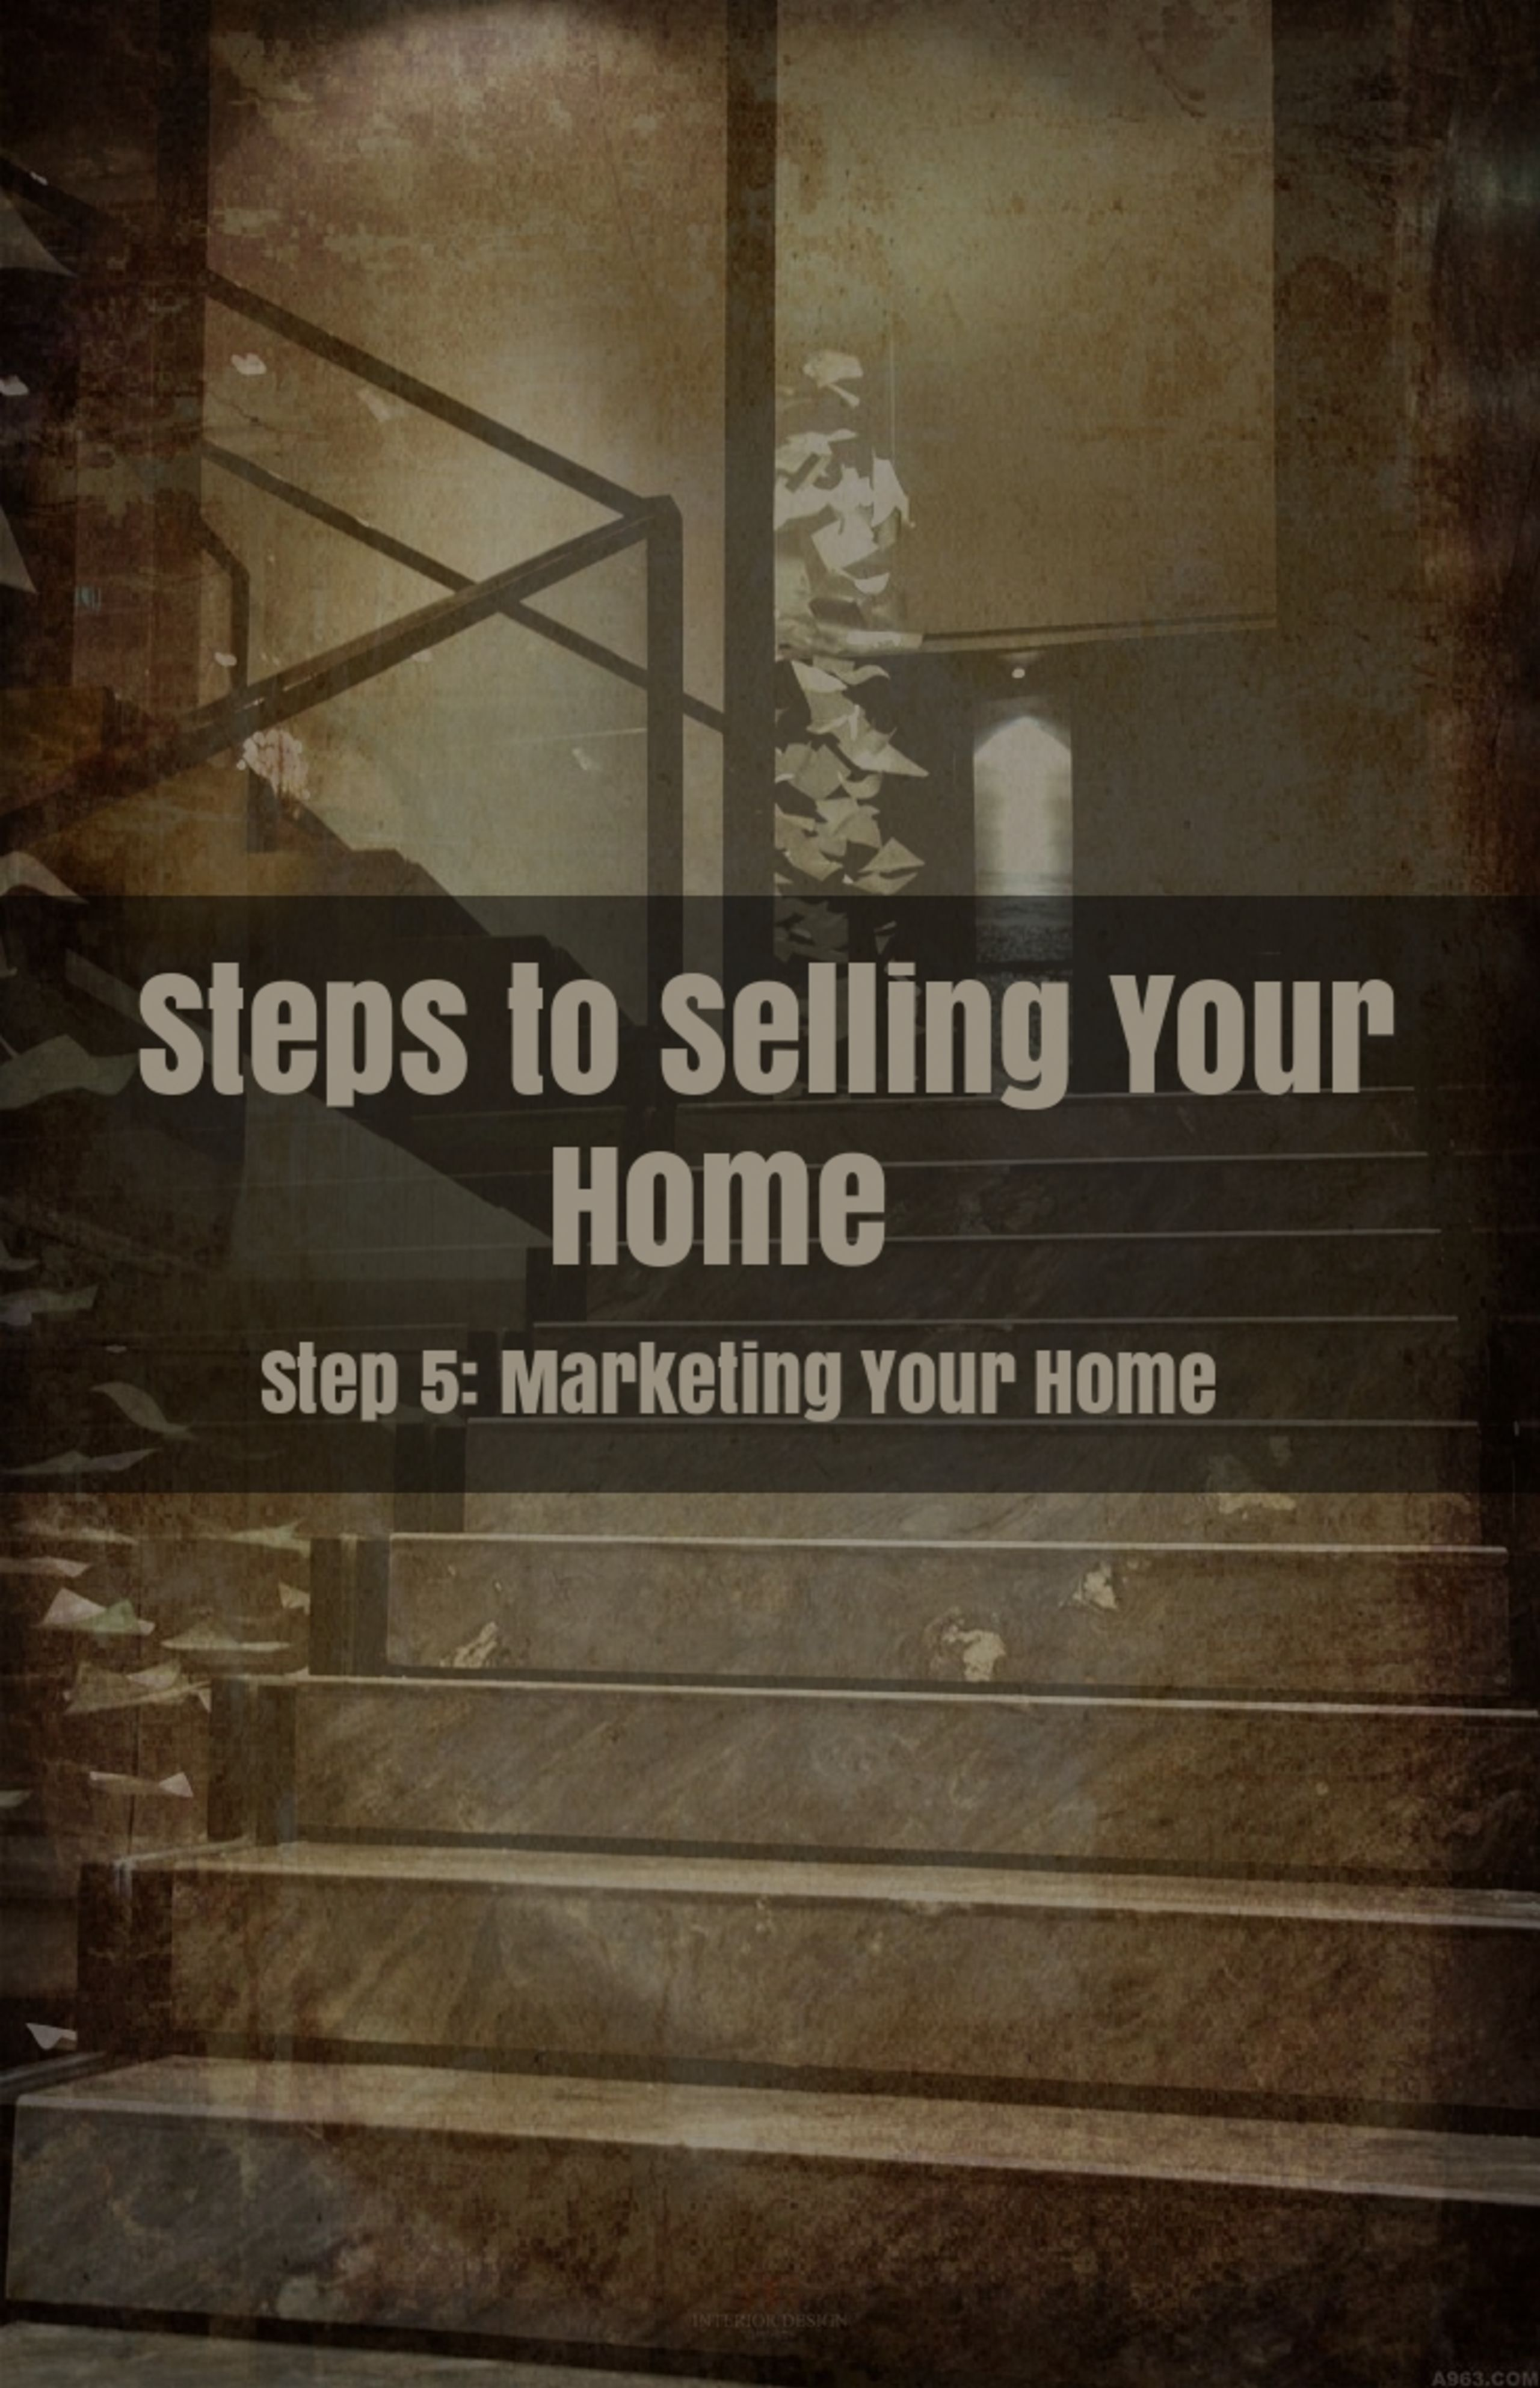 Step 5 – Marketing Your Home